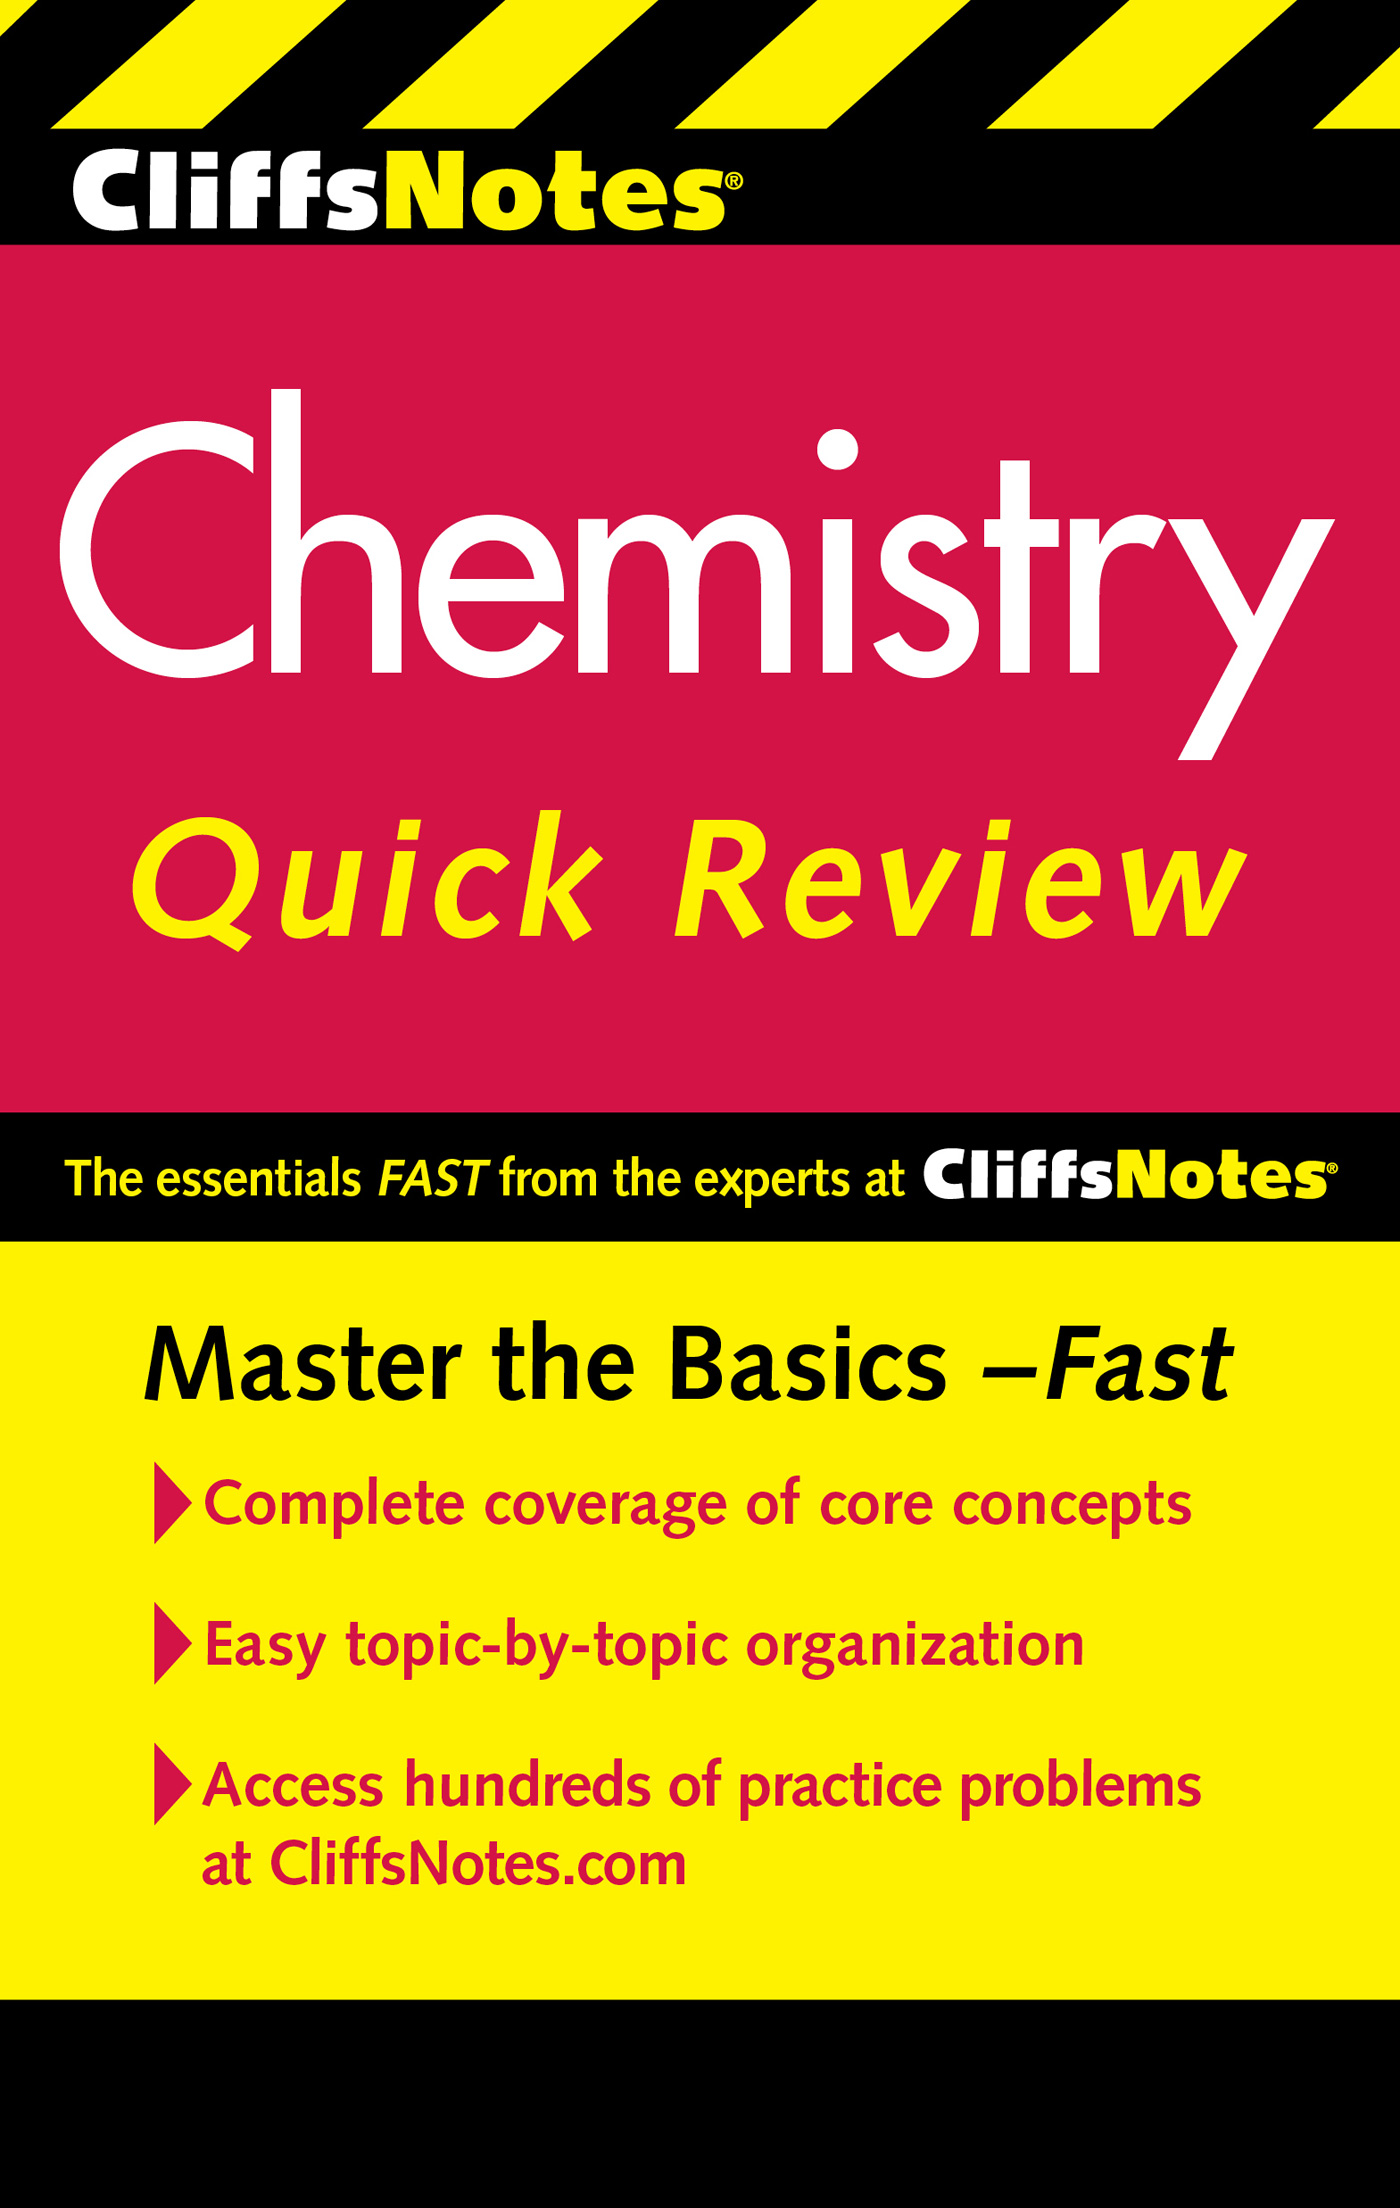 CliffsNotes Chemistry Quick Review, 2nd Edition-9780470905432